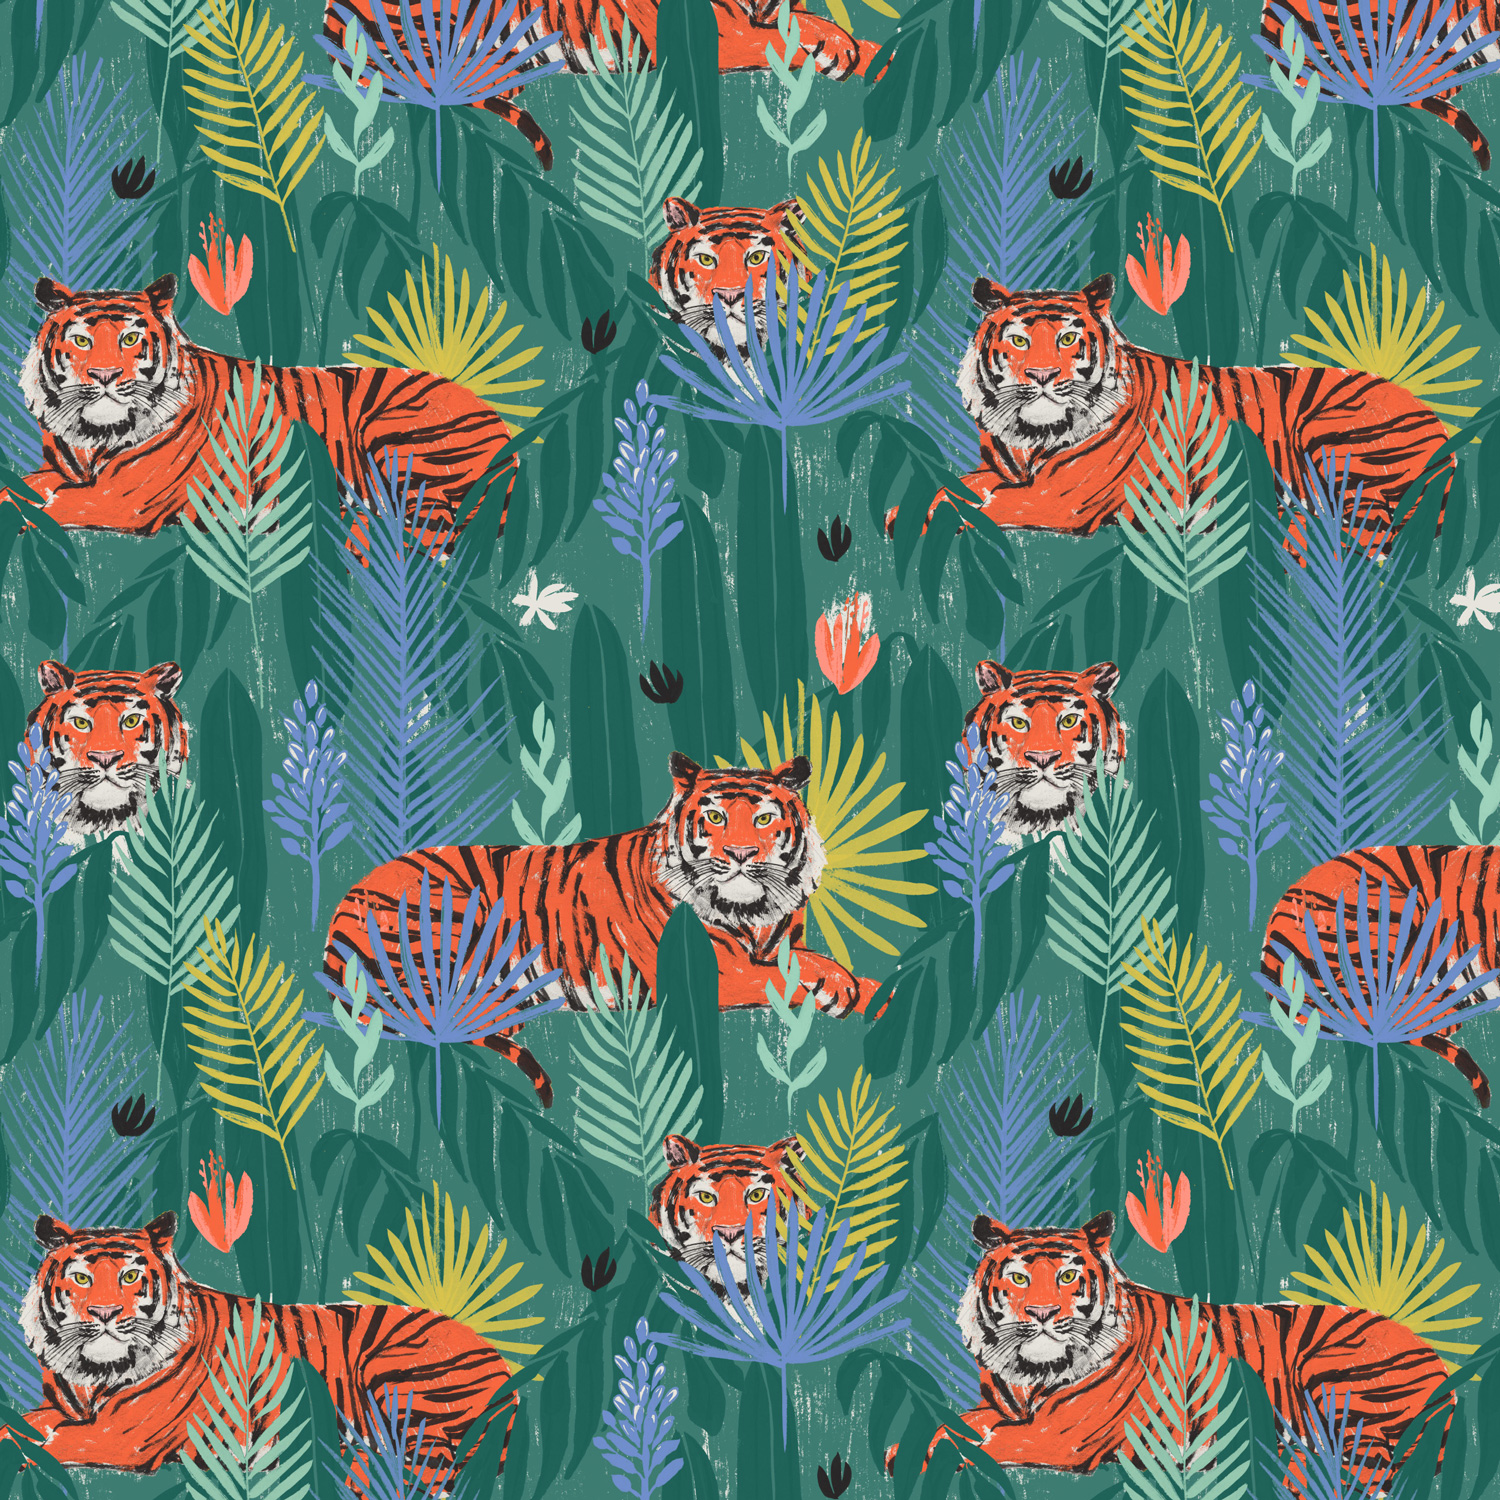 allierunnion-pattern-jj-tigertrance-1500.jpg